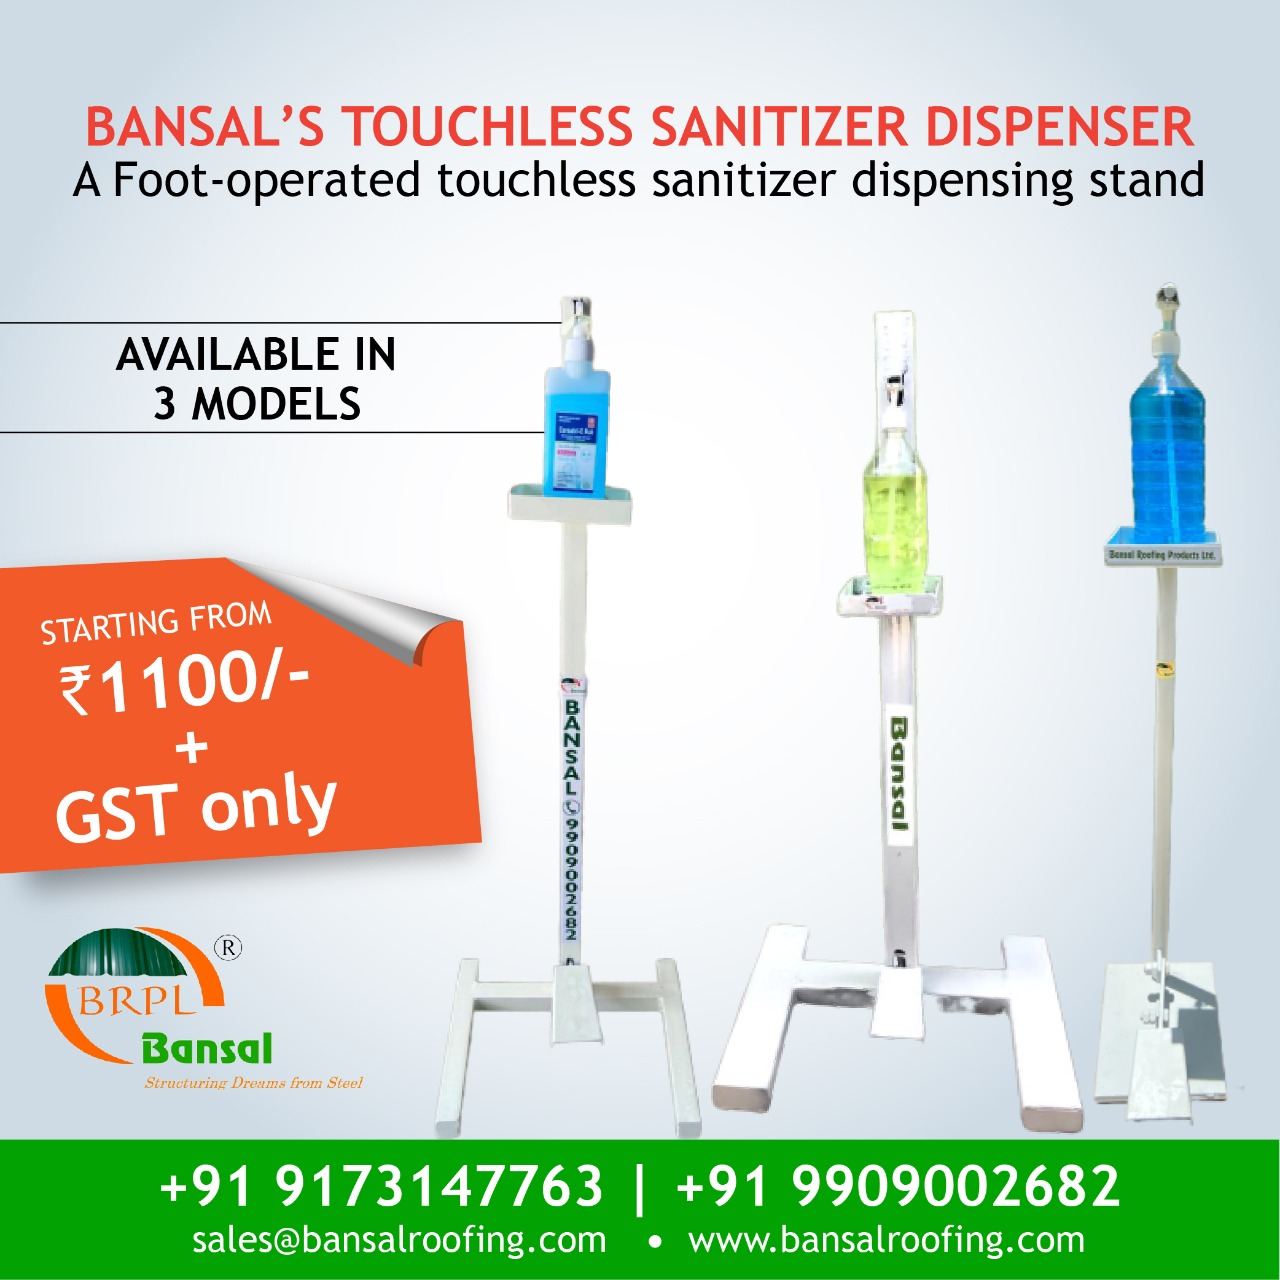 3 Models of Touchless Sanitizer Stand